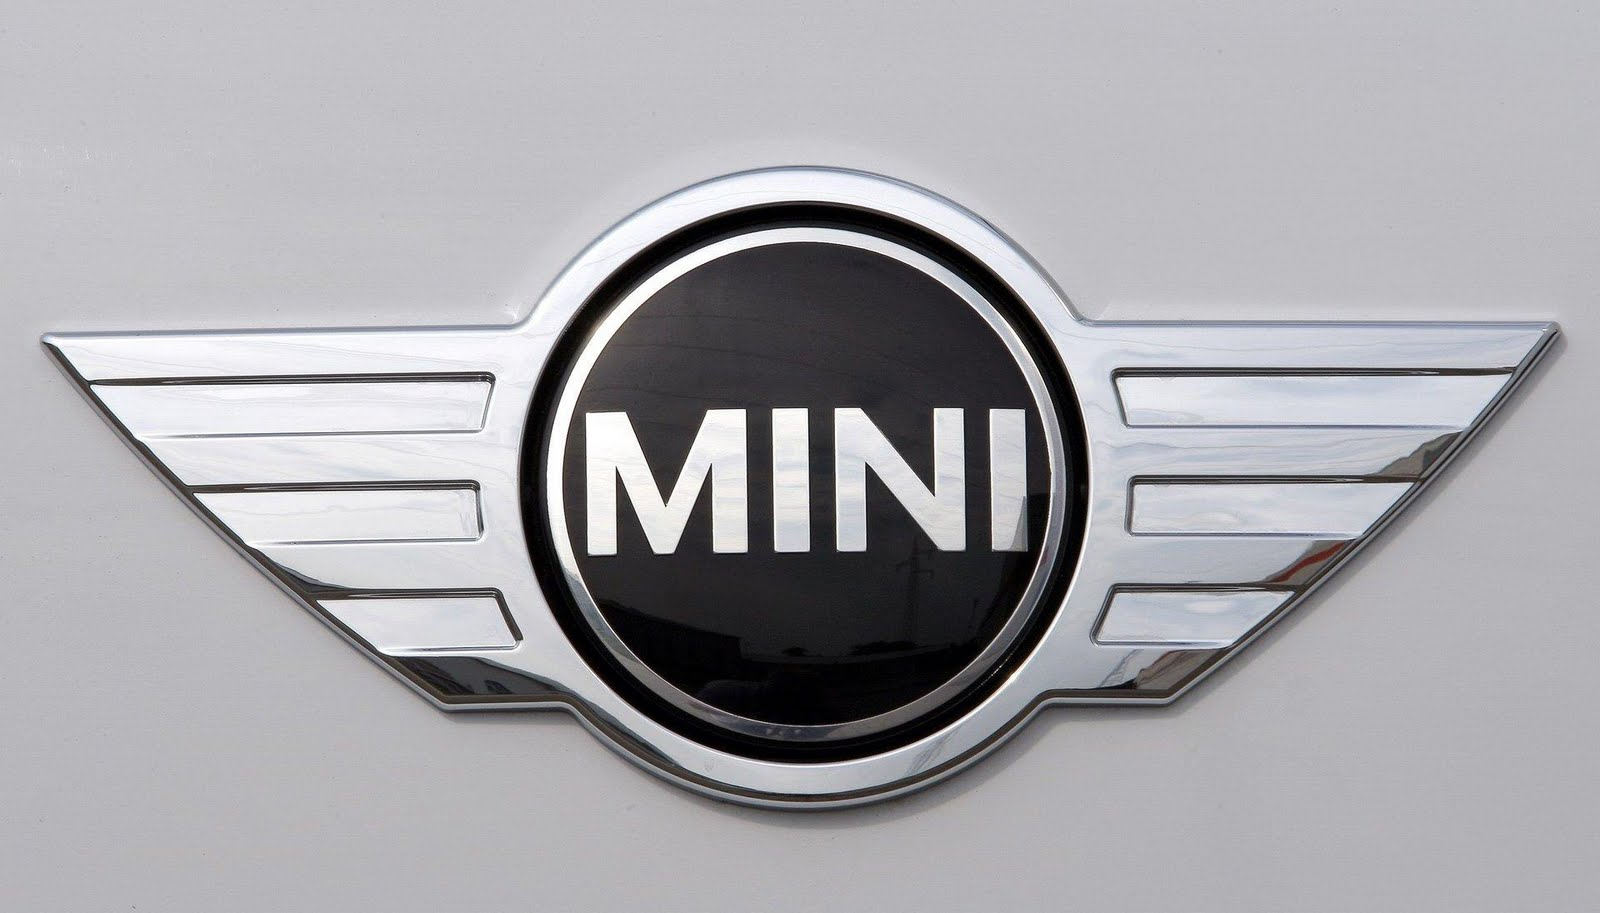 mini cooper logo  mini car symbol meaning and history mini cooper logo png mini cooper logo history